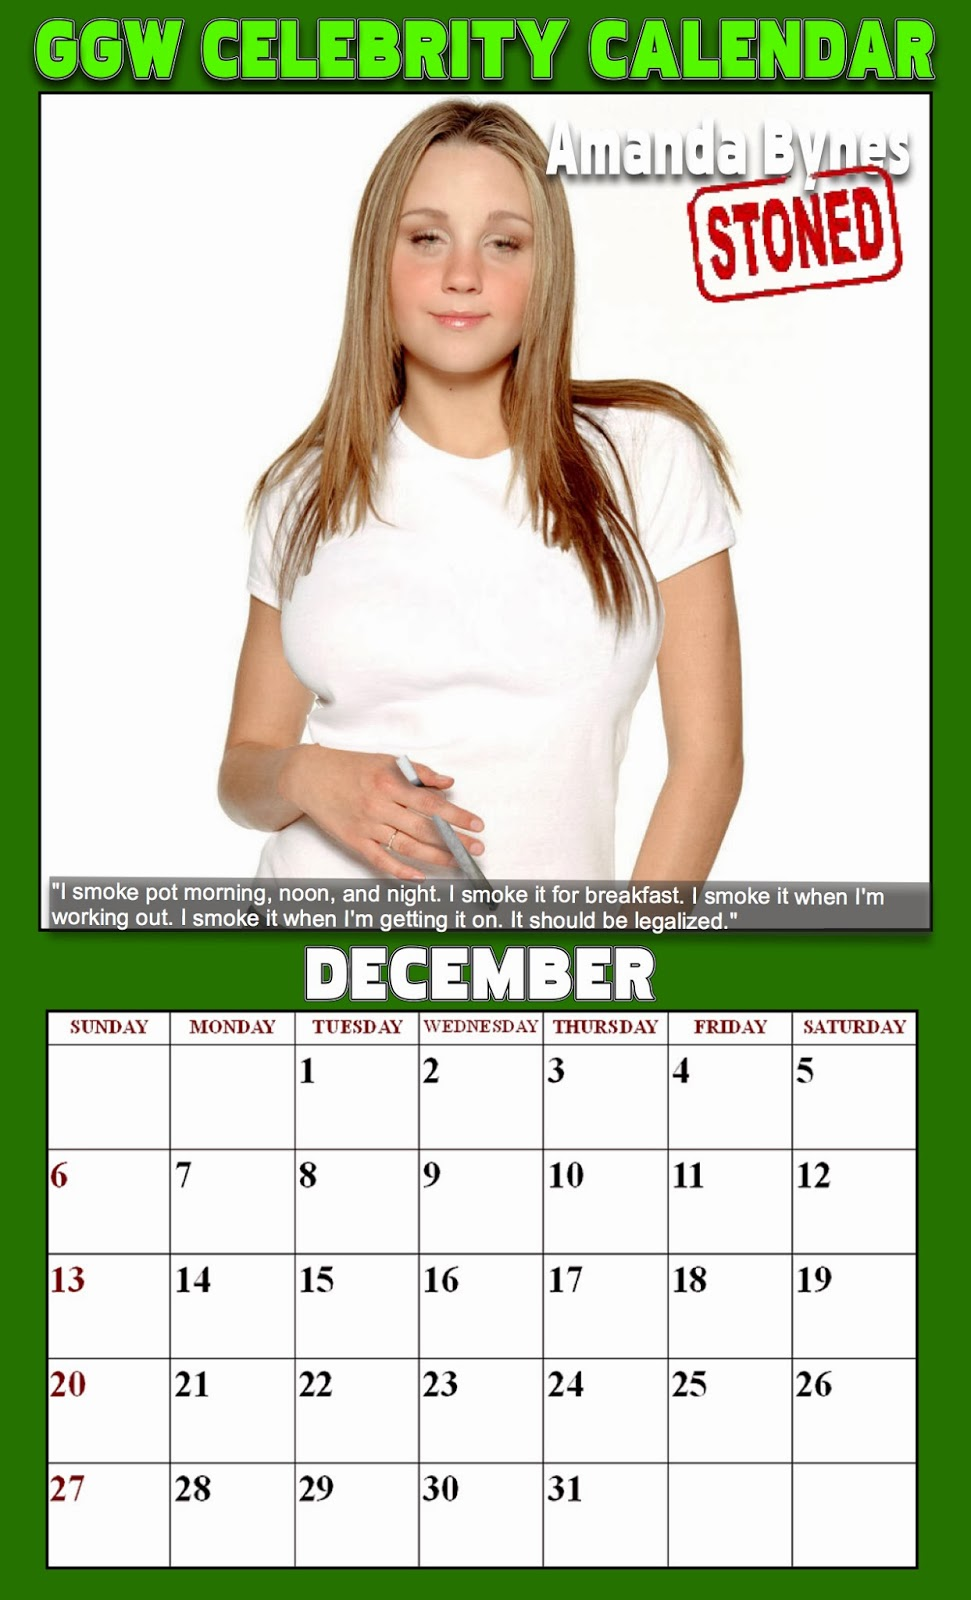 Calendar of Hollywood Events - seeing-stars.com